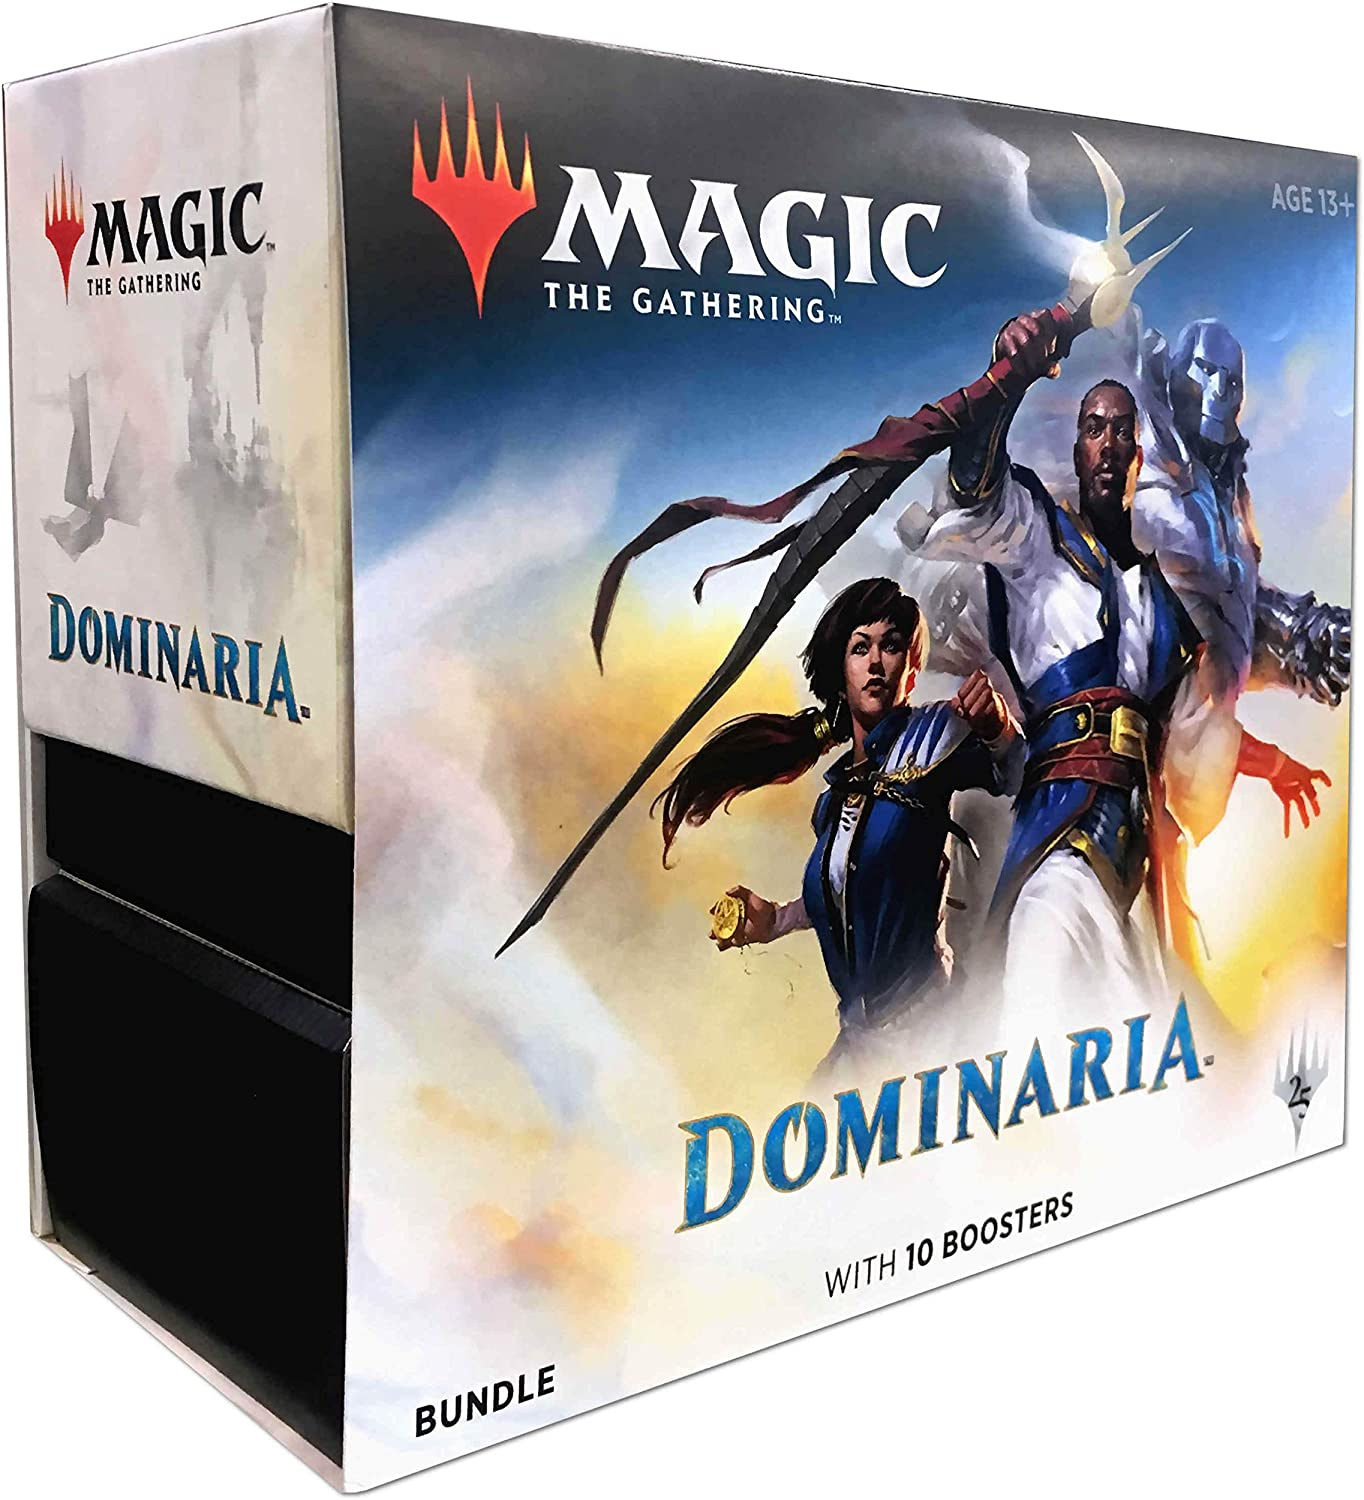 Magic The Gathering, Color Multi Colour (C34910000): Amazon.es: Juguetes y juegos